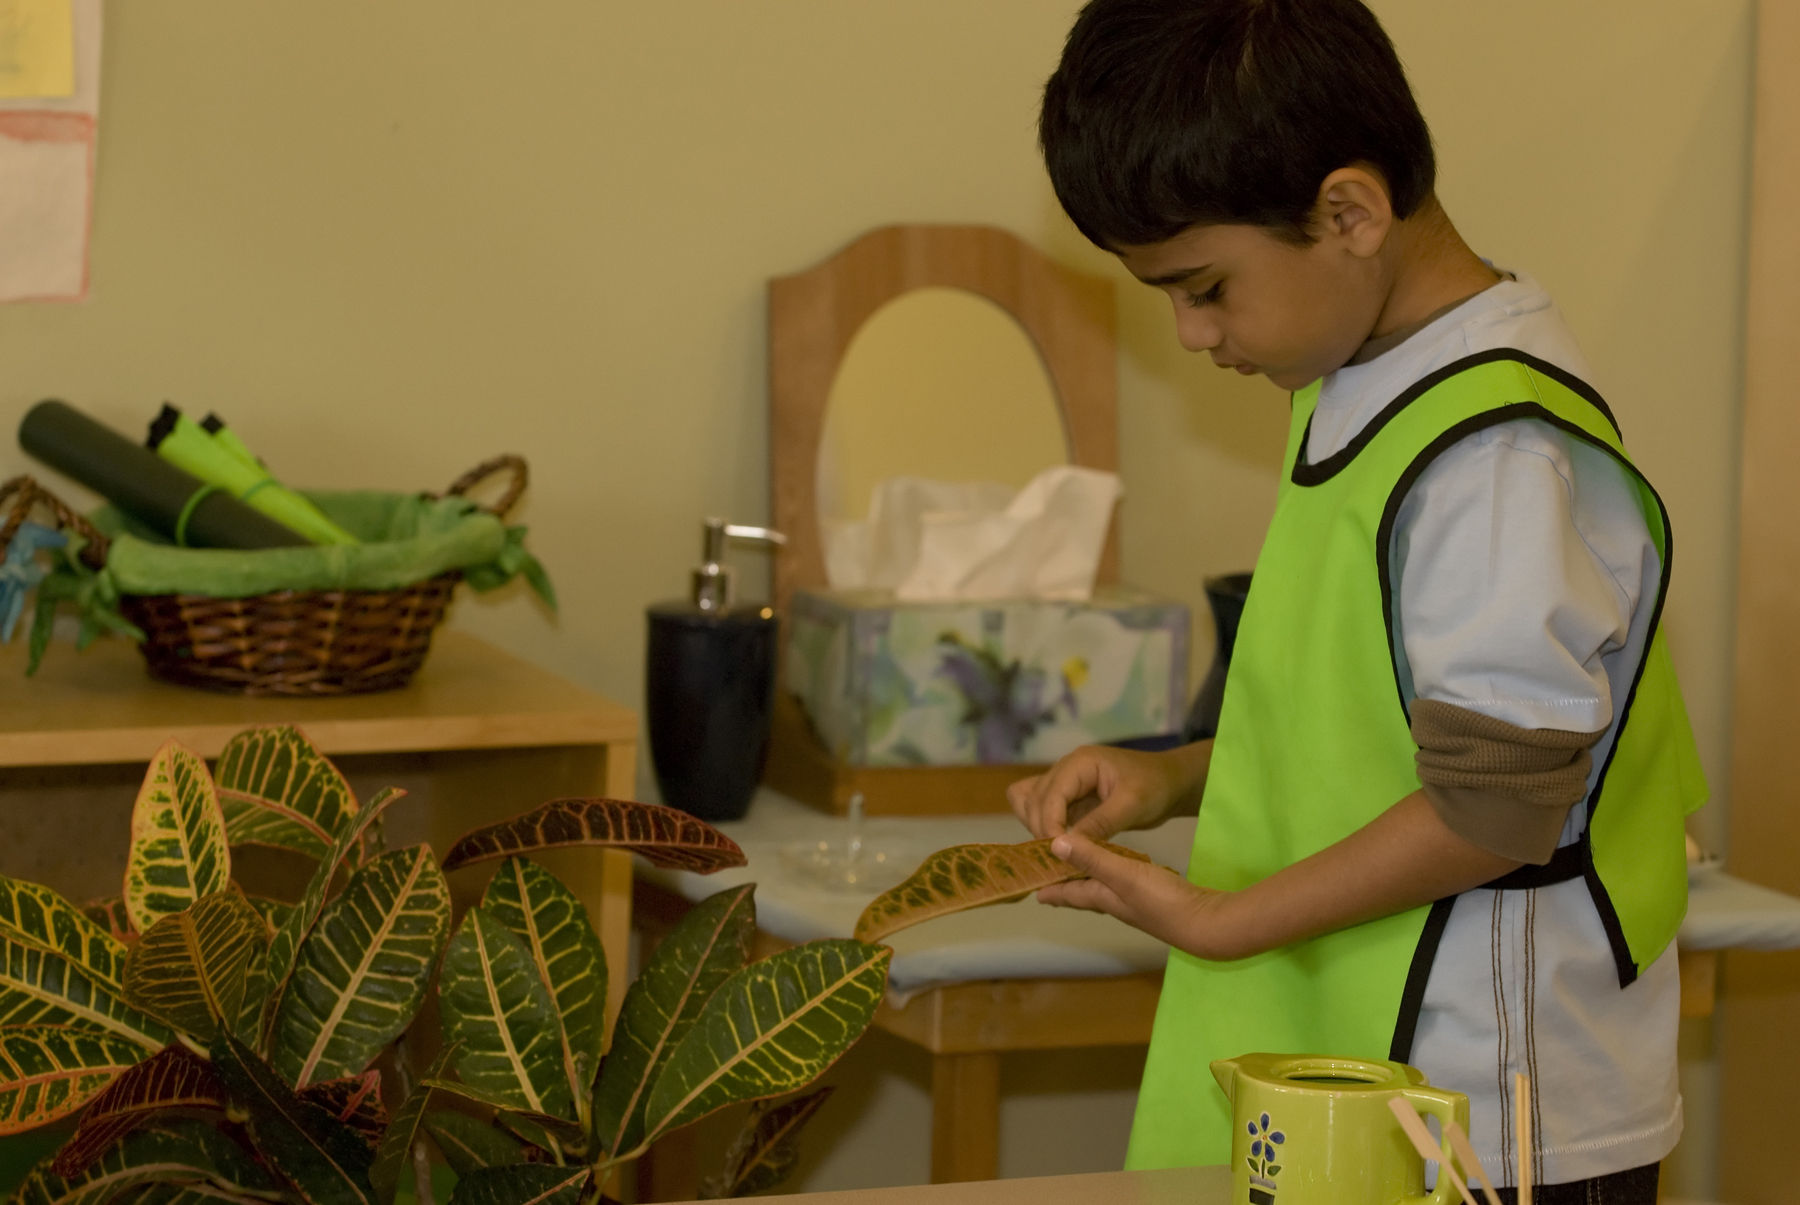 Caring for plants with practical life skills